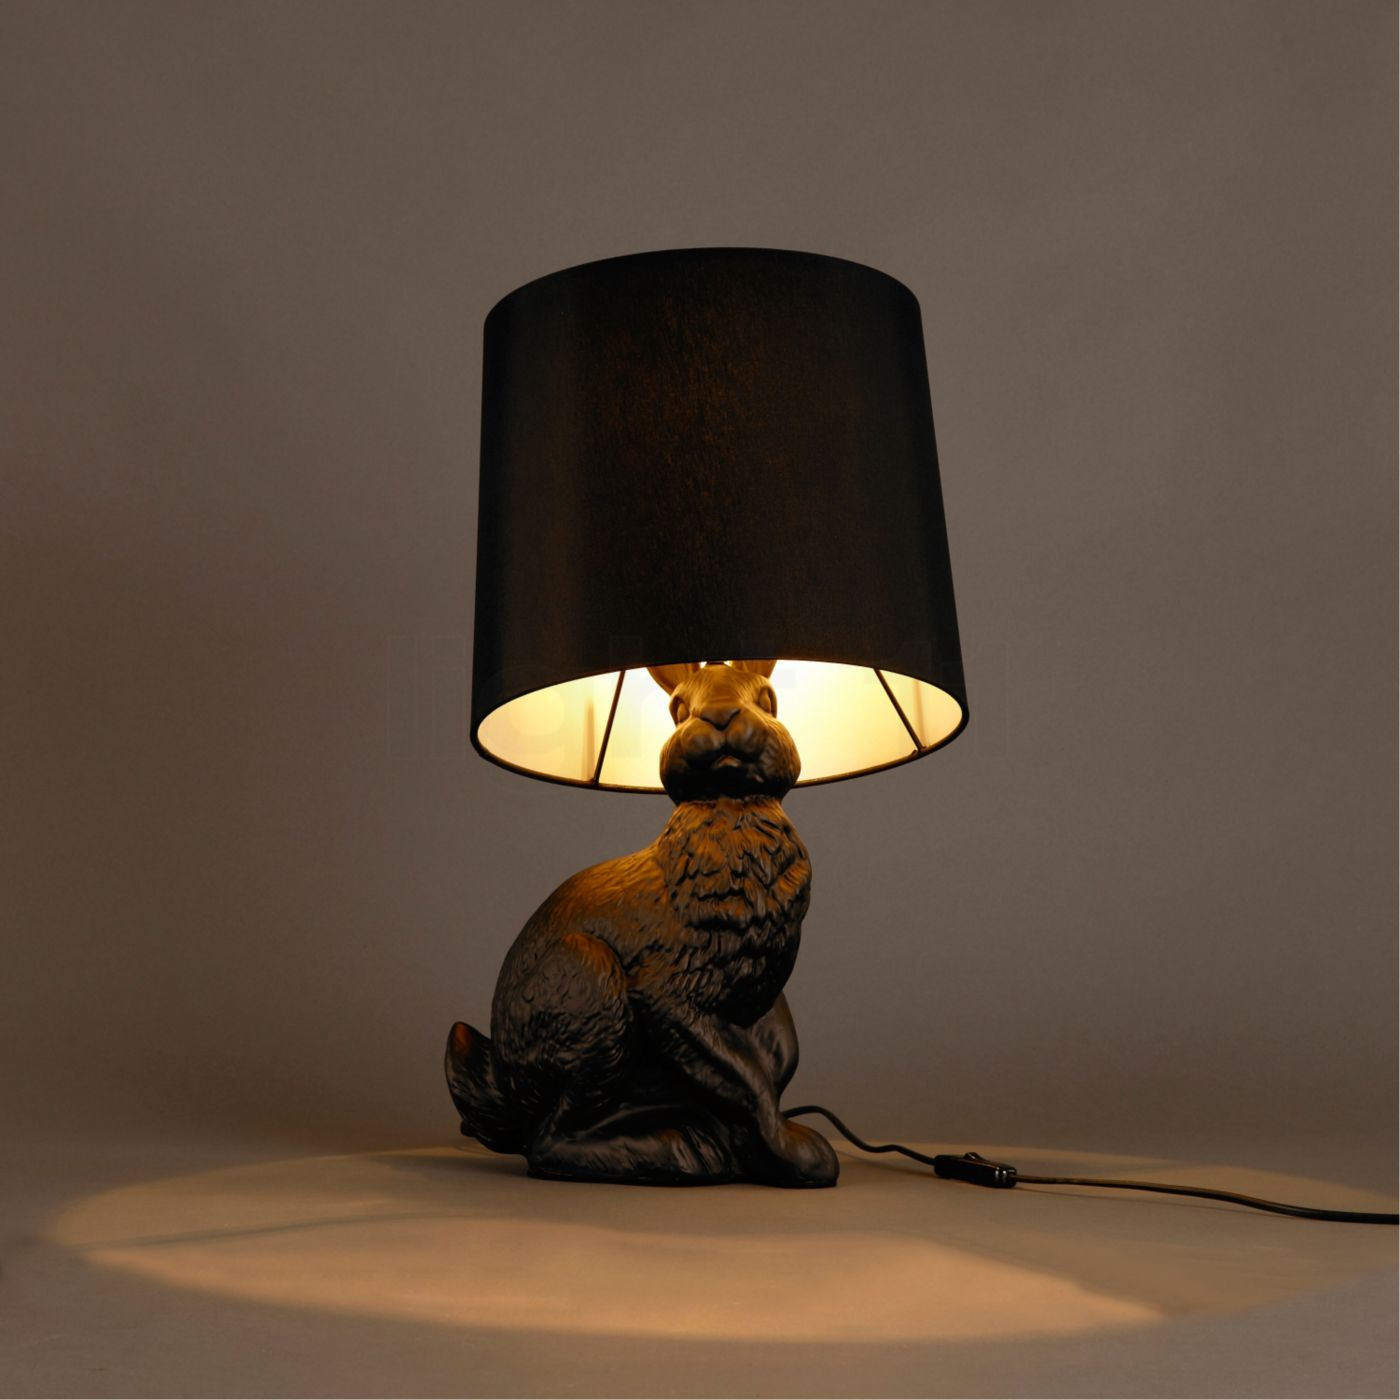 bunny dreams products staff white lamp light heico collections big house sitting picks rabbit